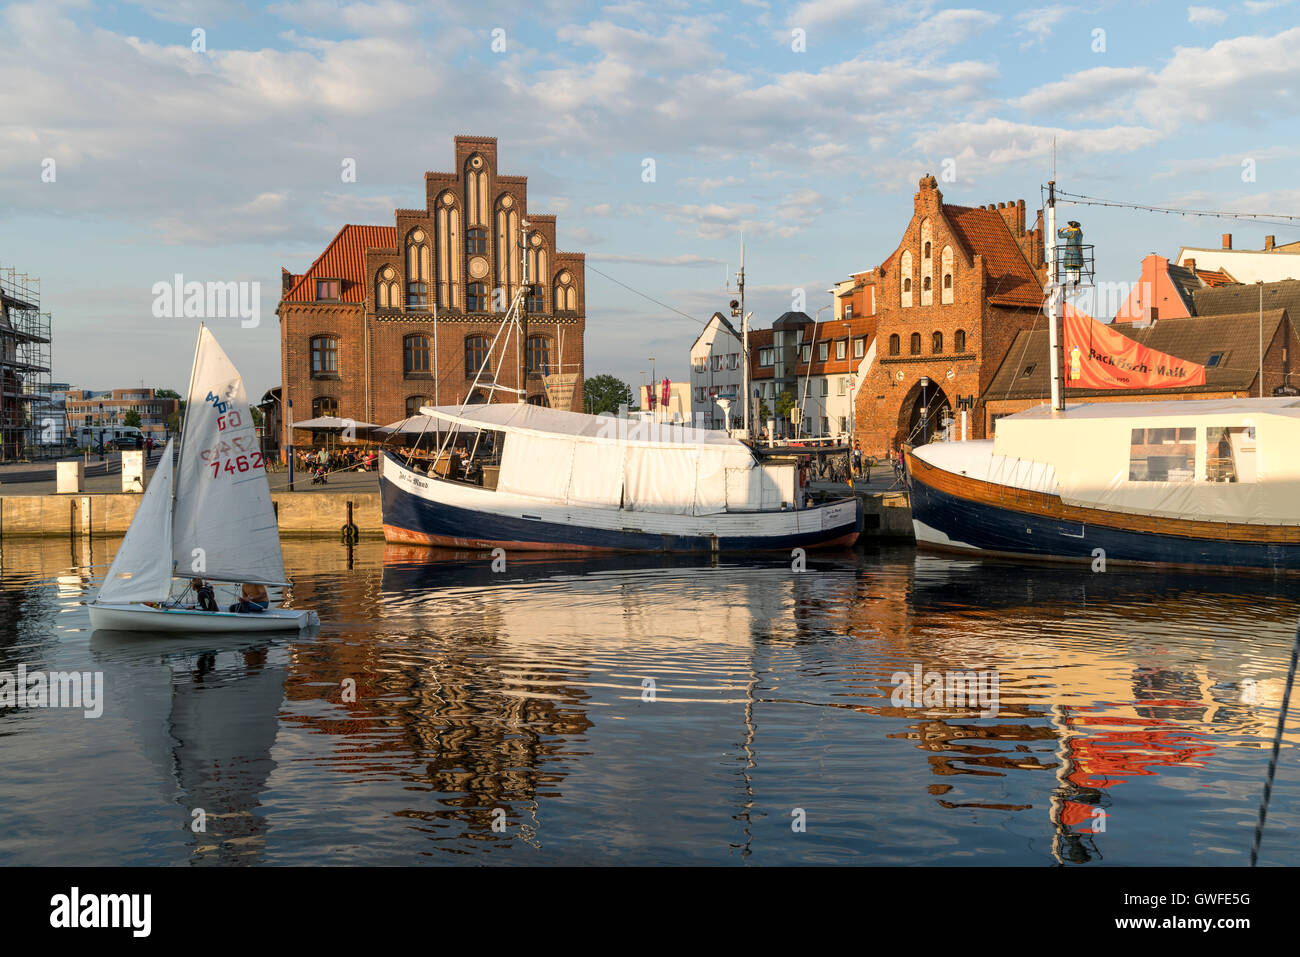 historic Old Harbour, watergate and old customs house, Hanseatic City of Wismar, Mecklenburg-Vorpommern, Germany - Stock Image